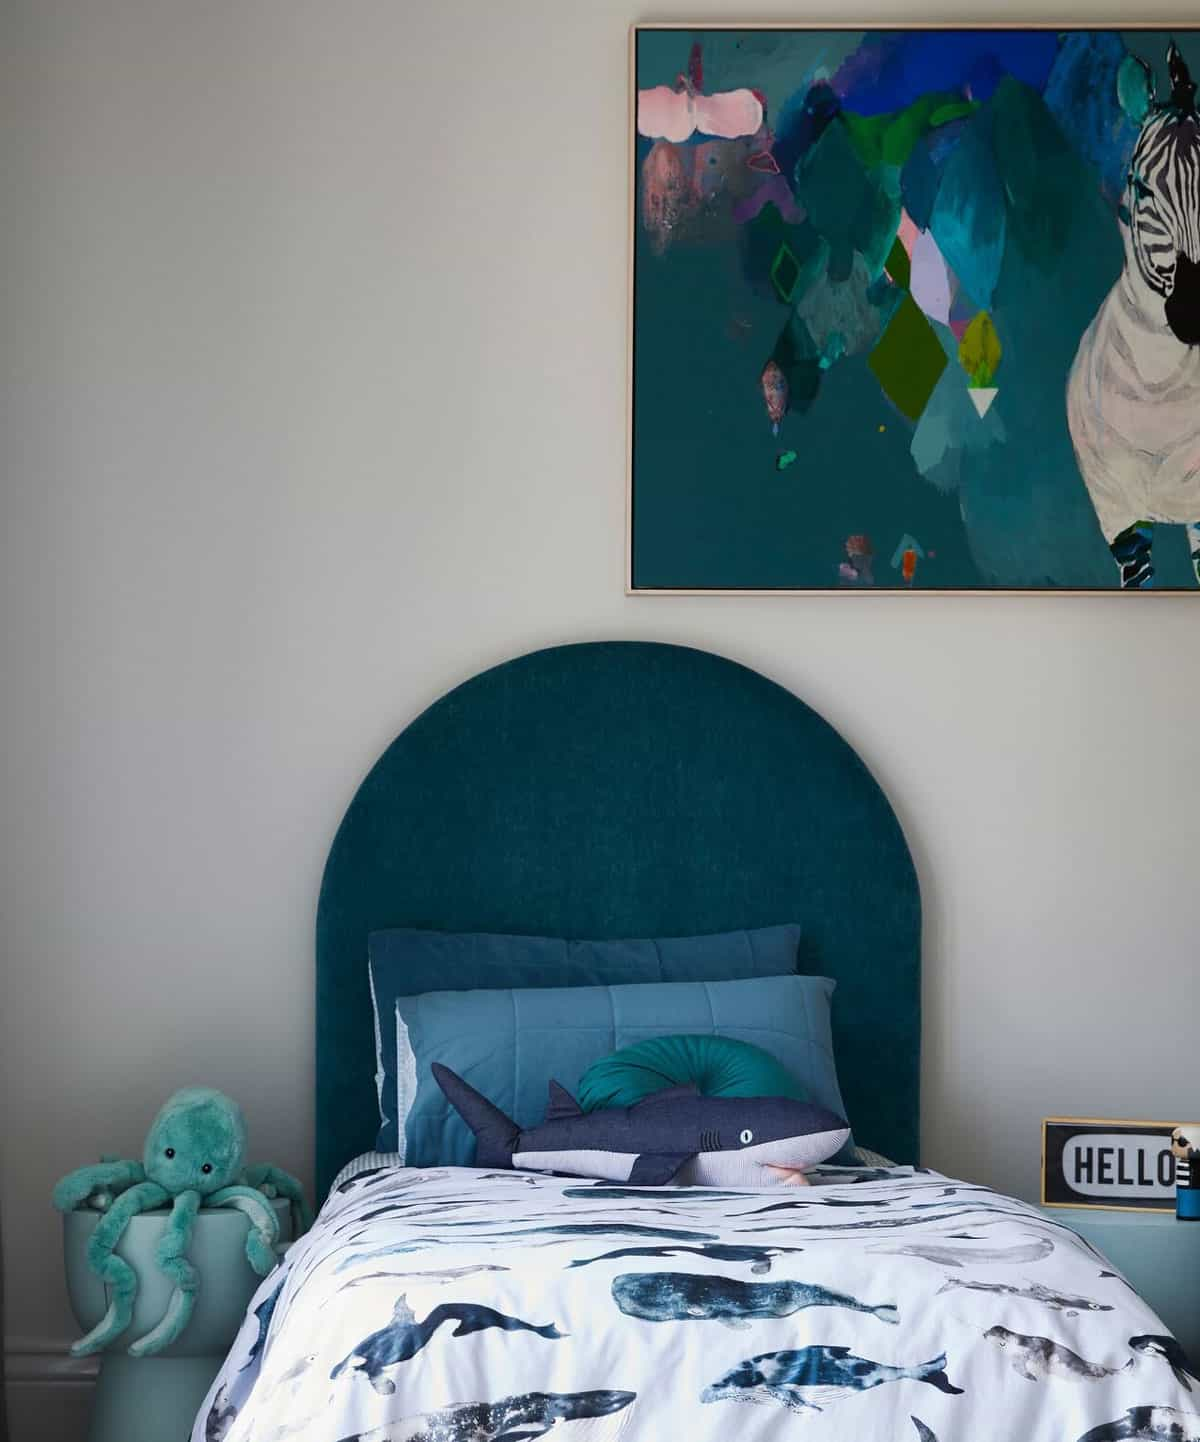 Heatherly Design's Stella Bedhead in the bedrooom of Bec Judd's twin boys